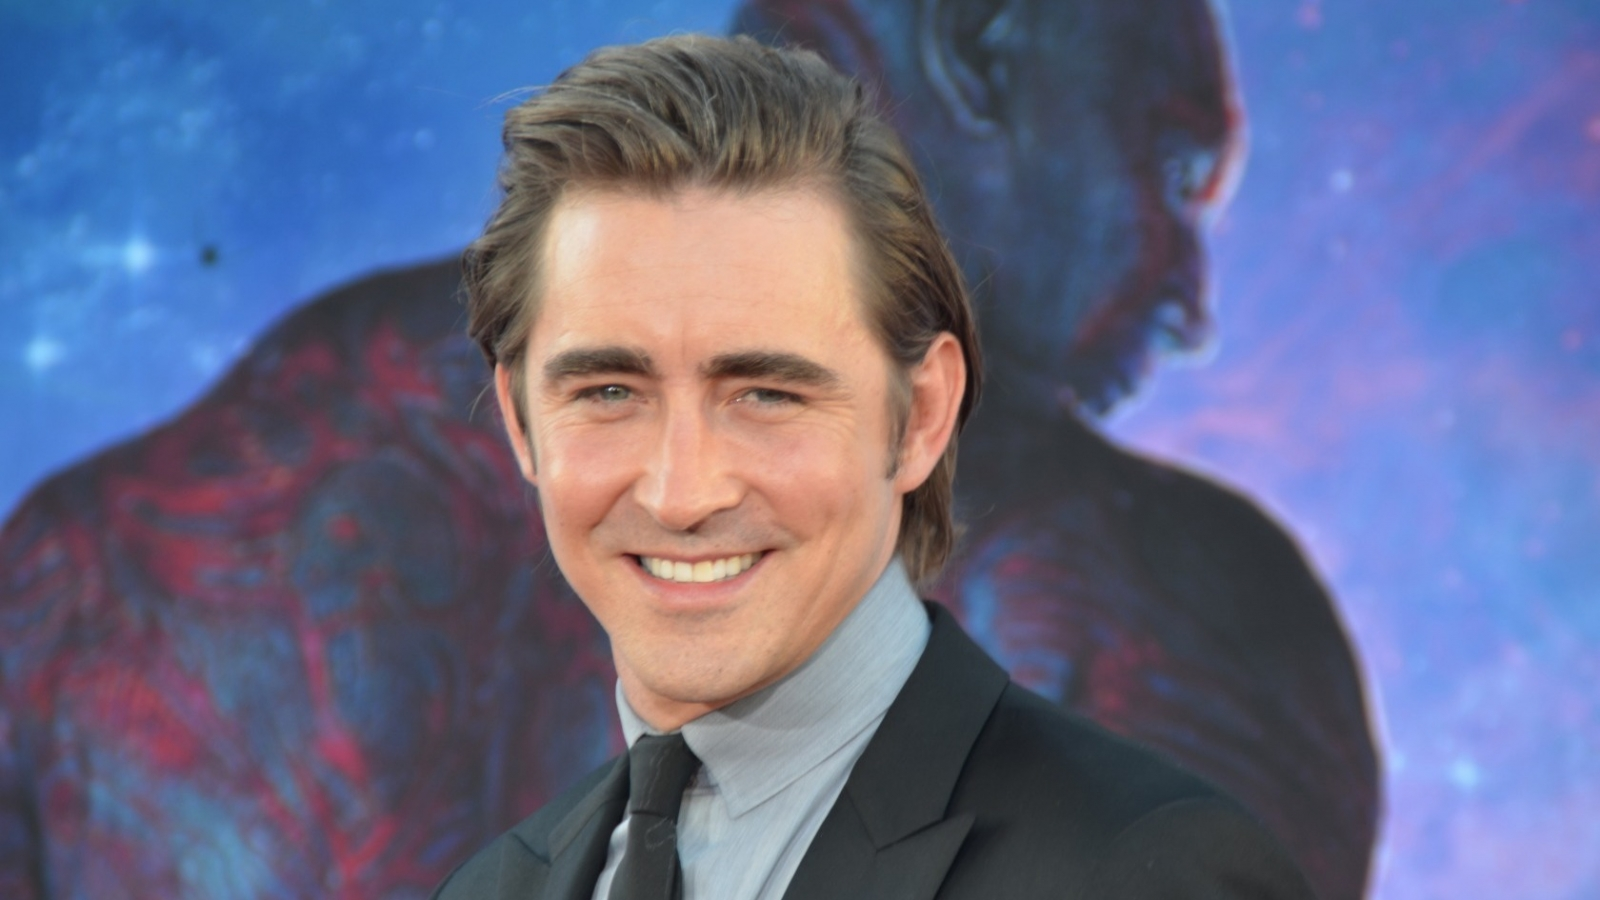 Lee Pace Actor for 1600 x 900 HDTV resolution